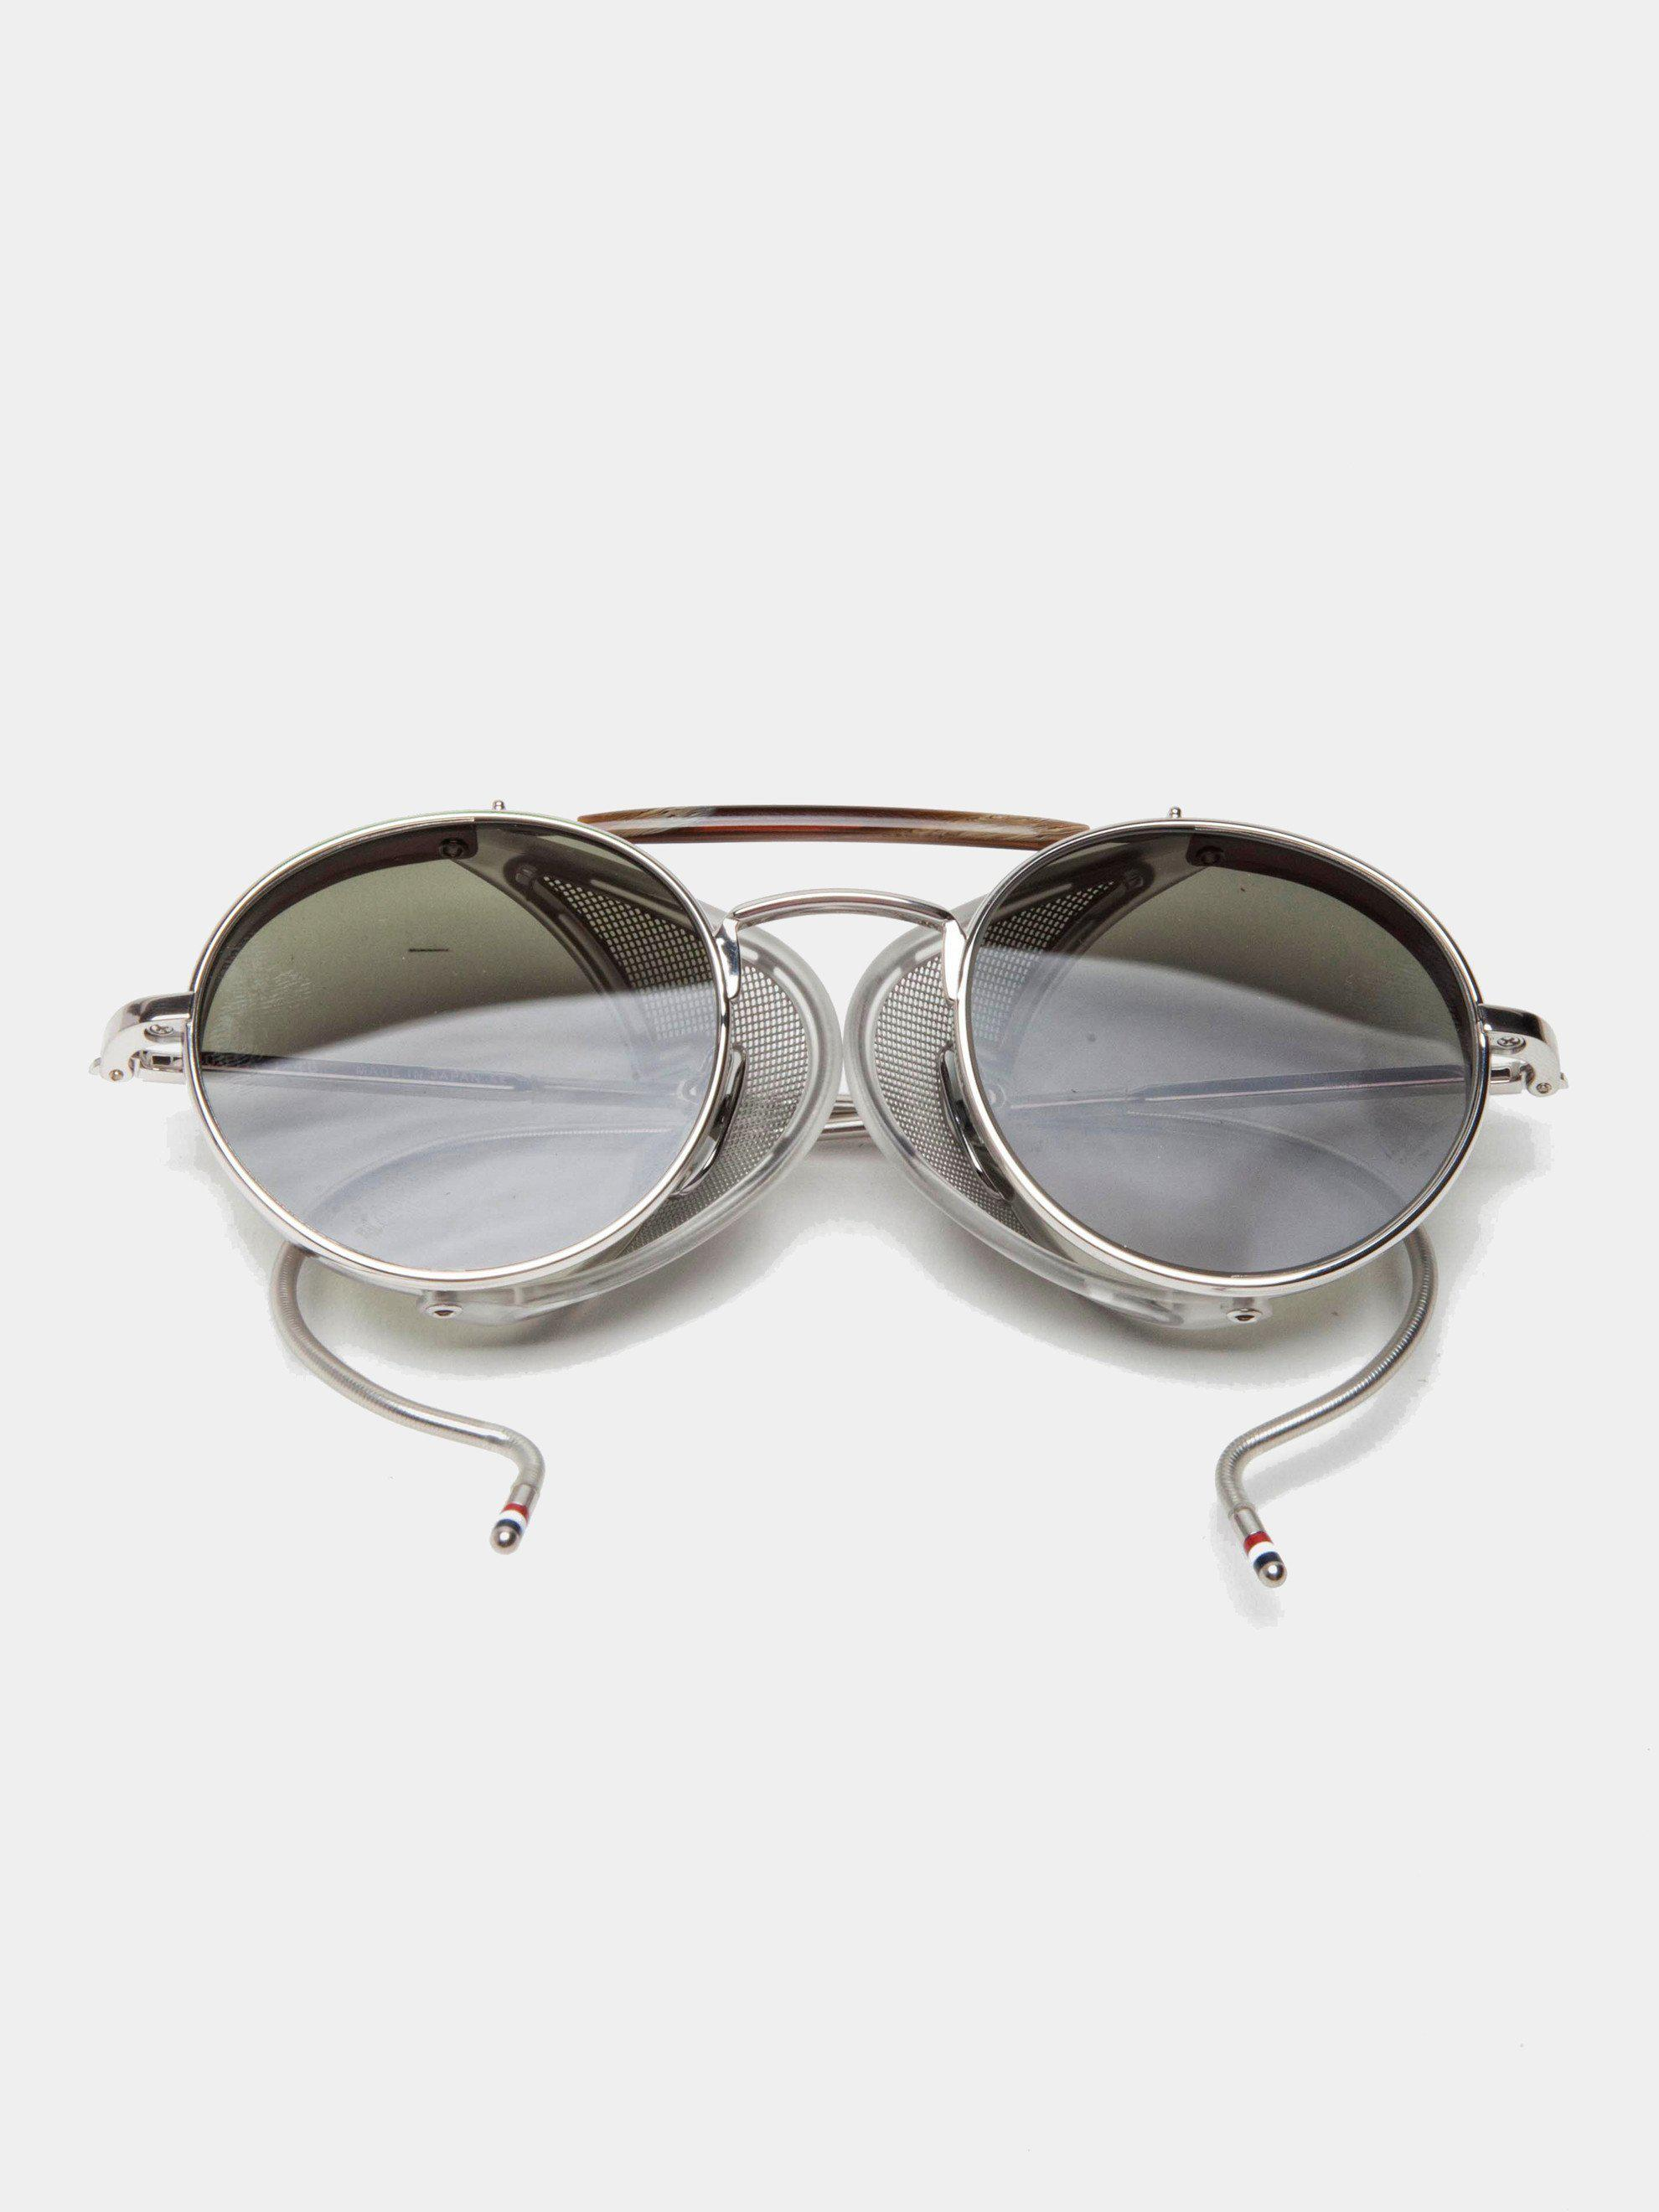 e03e7386faf2 Lyst - Thom Browne Tb-001 (shiny Silver g-15) in Metallic for Men